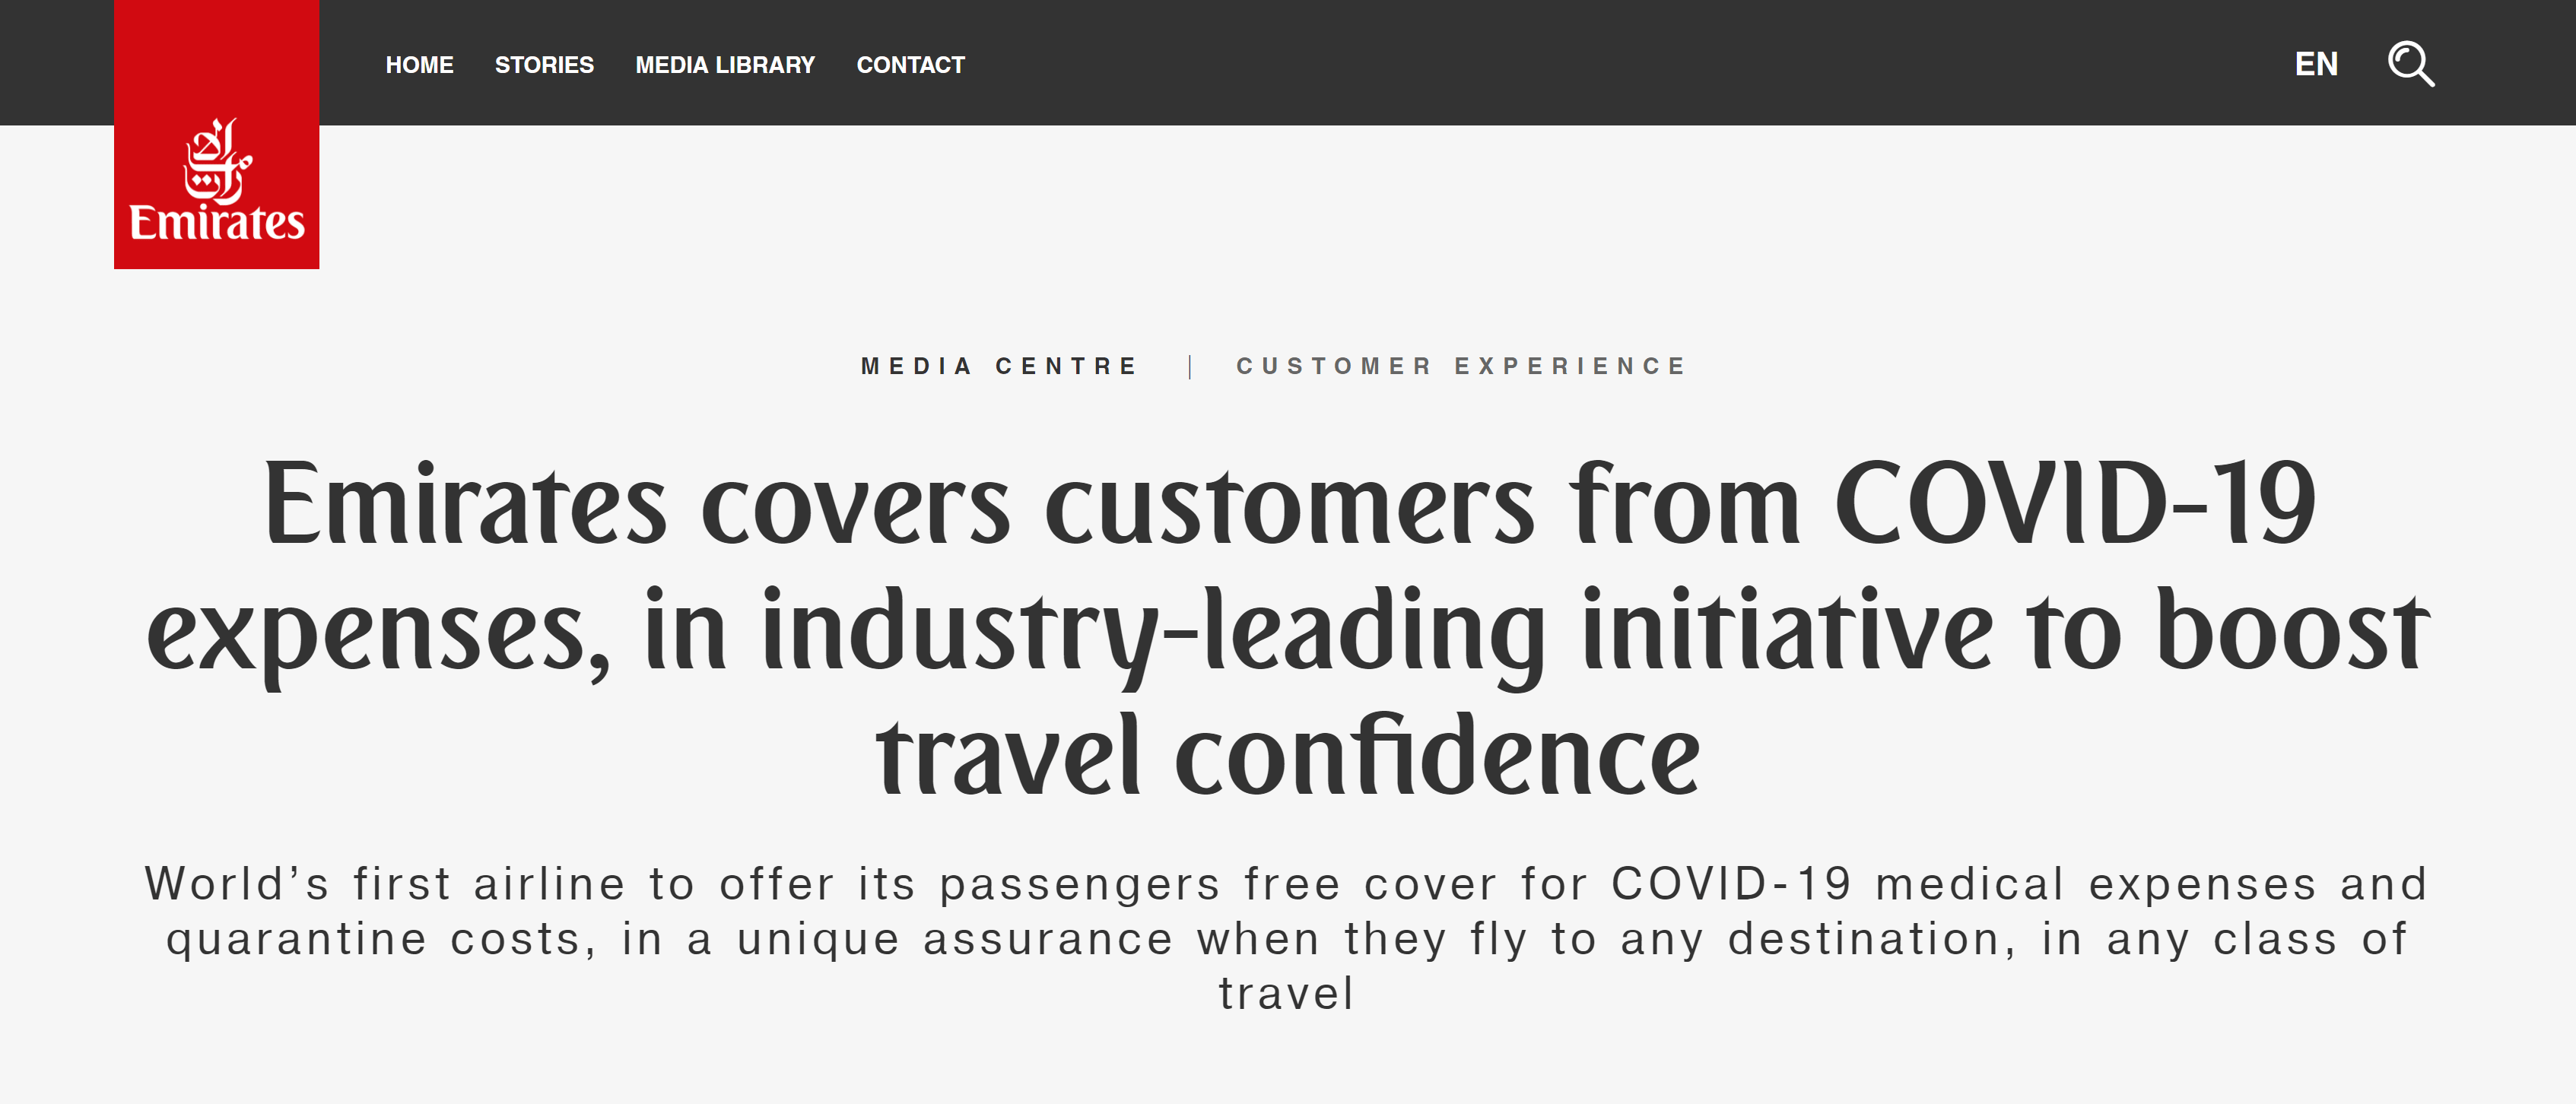 emirates-covers-customers-from-covid-...